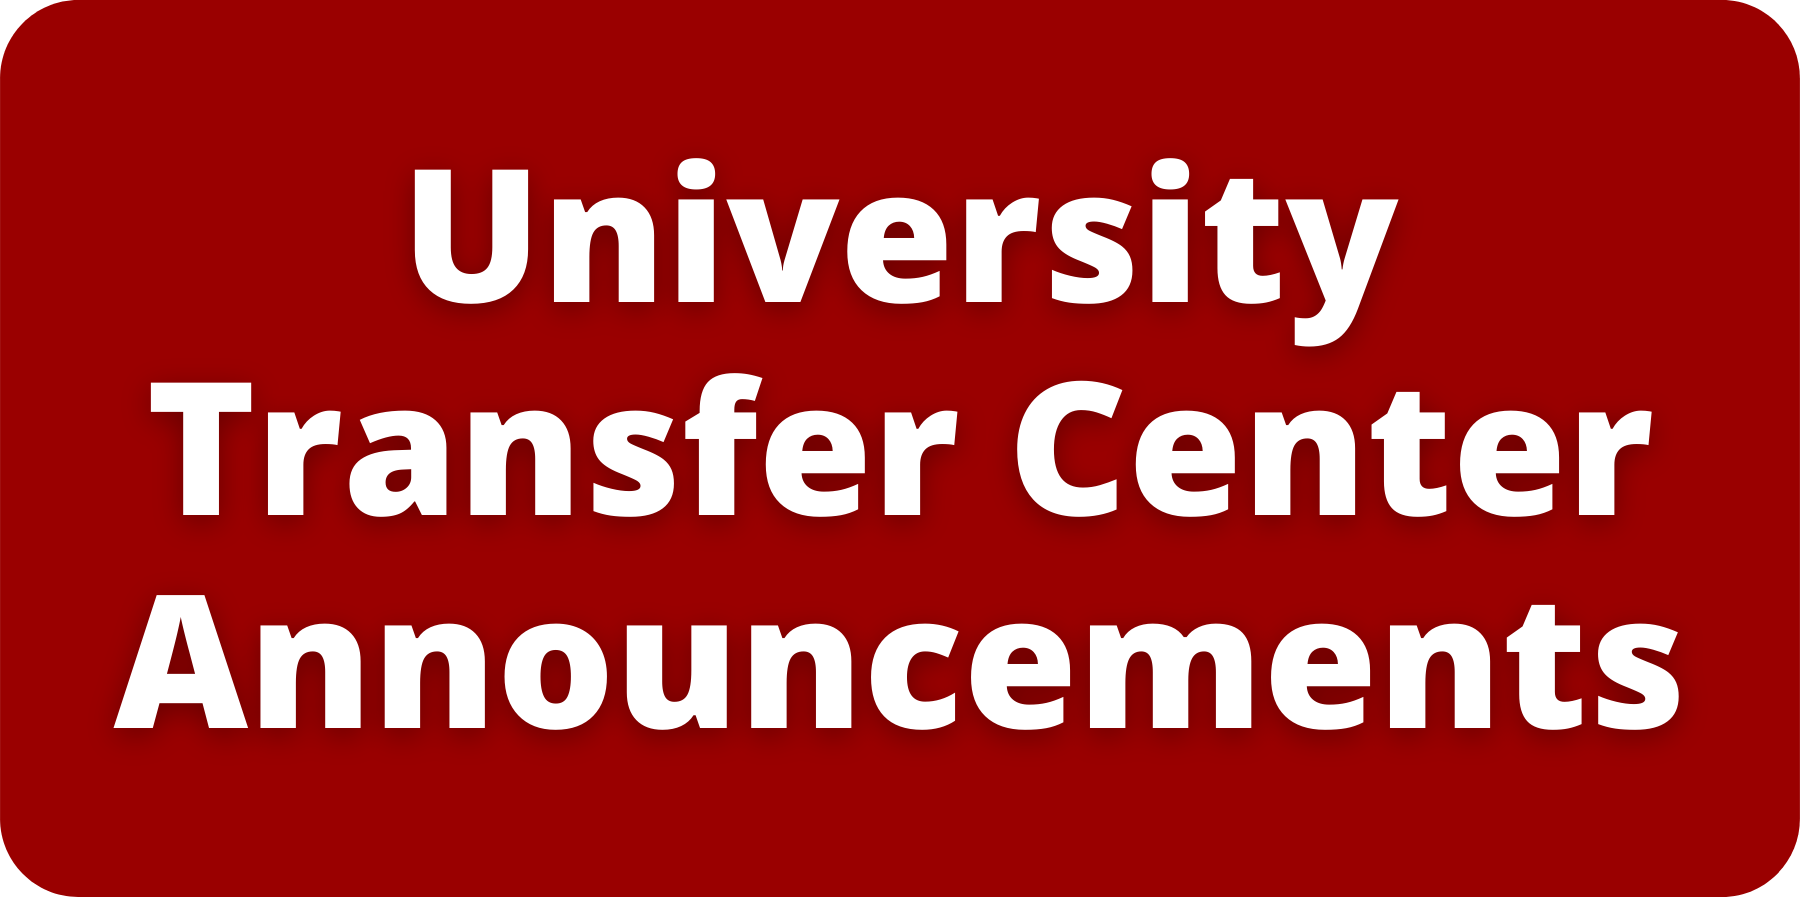 University Transfer Center Annoucements.png